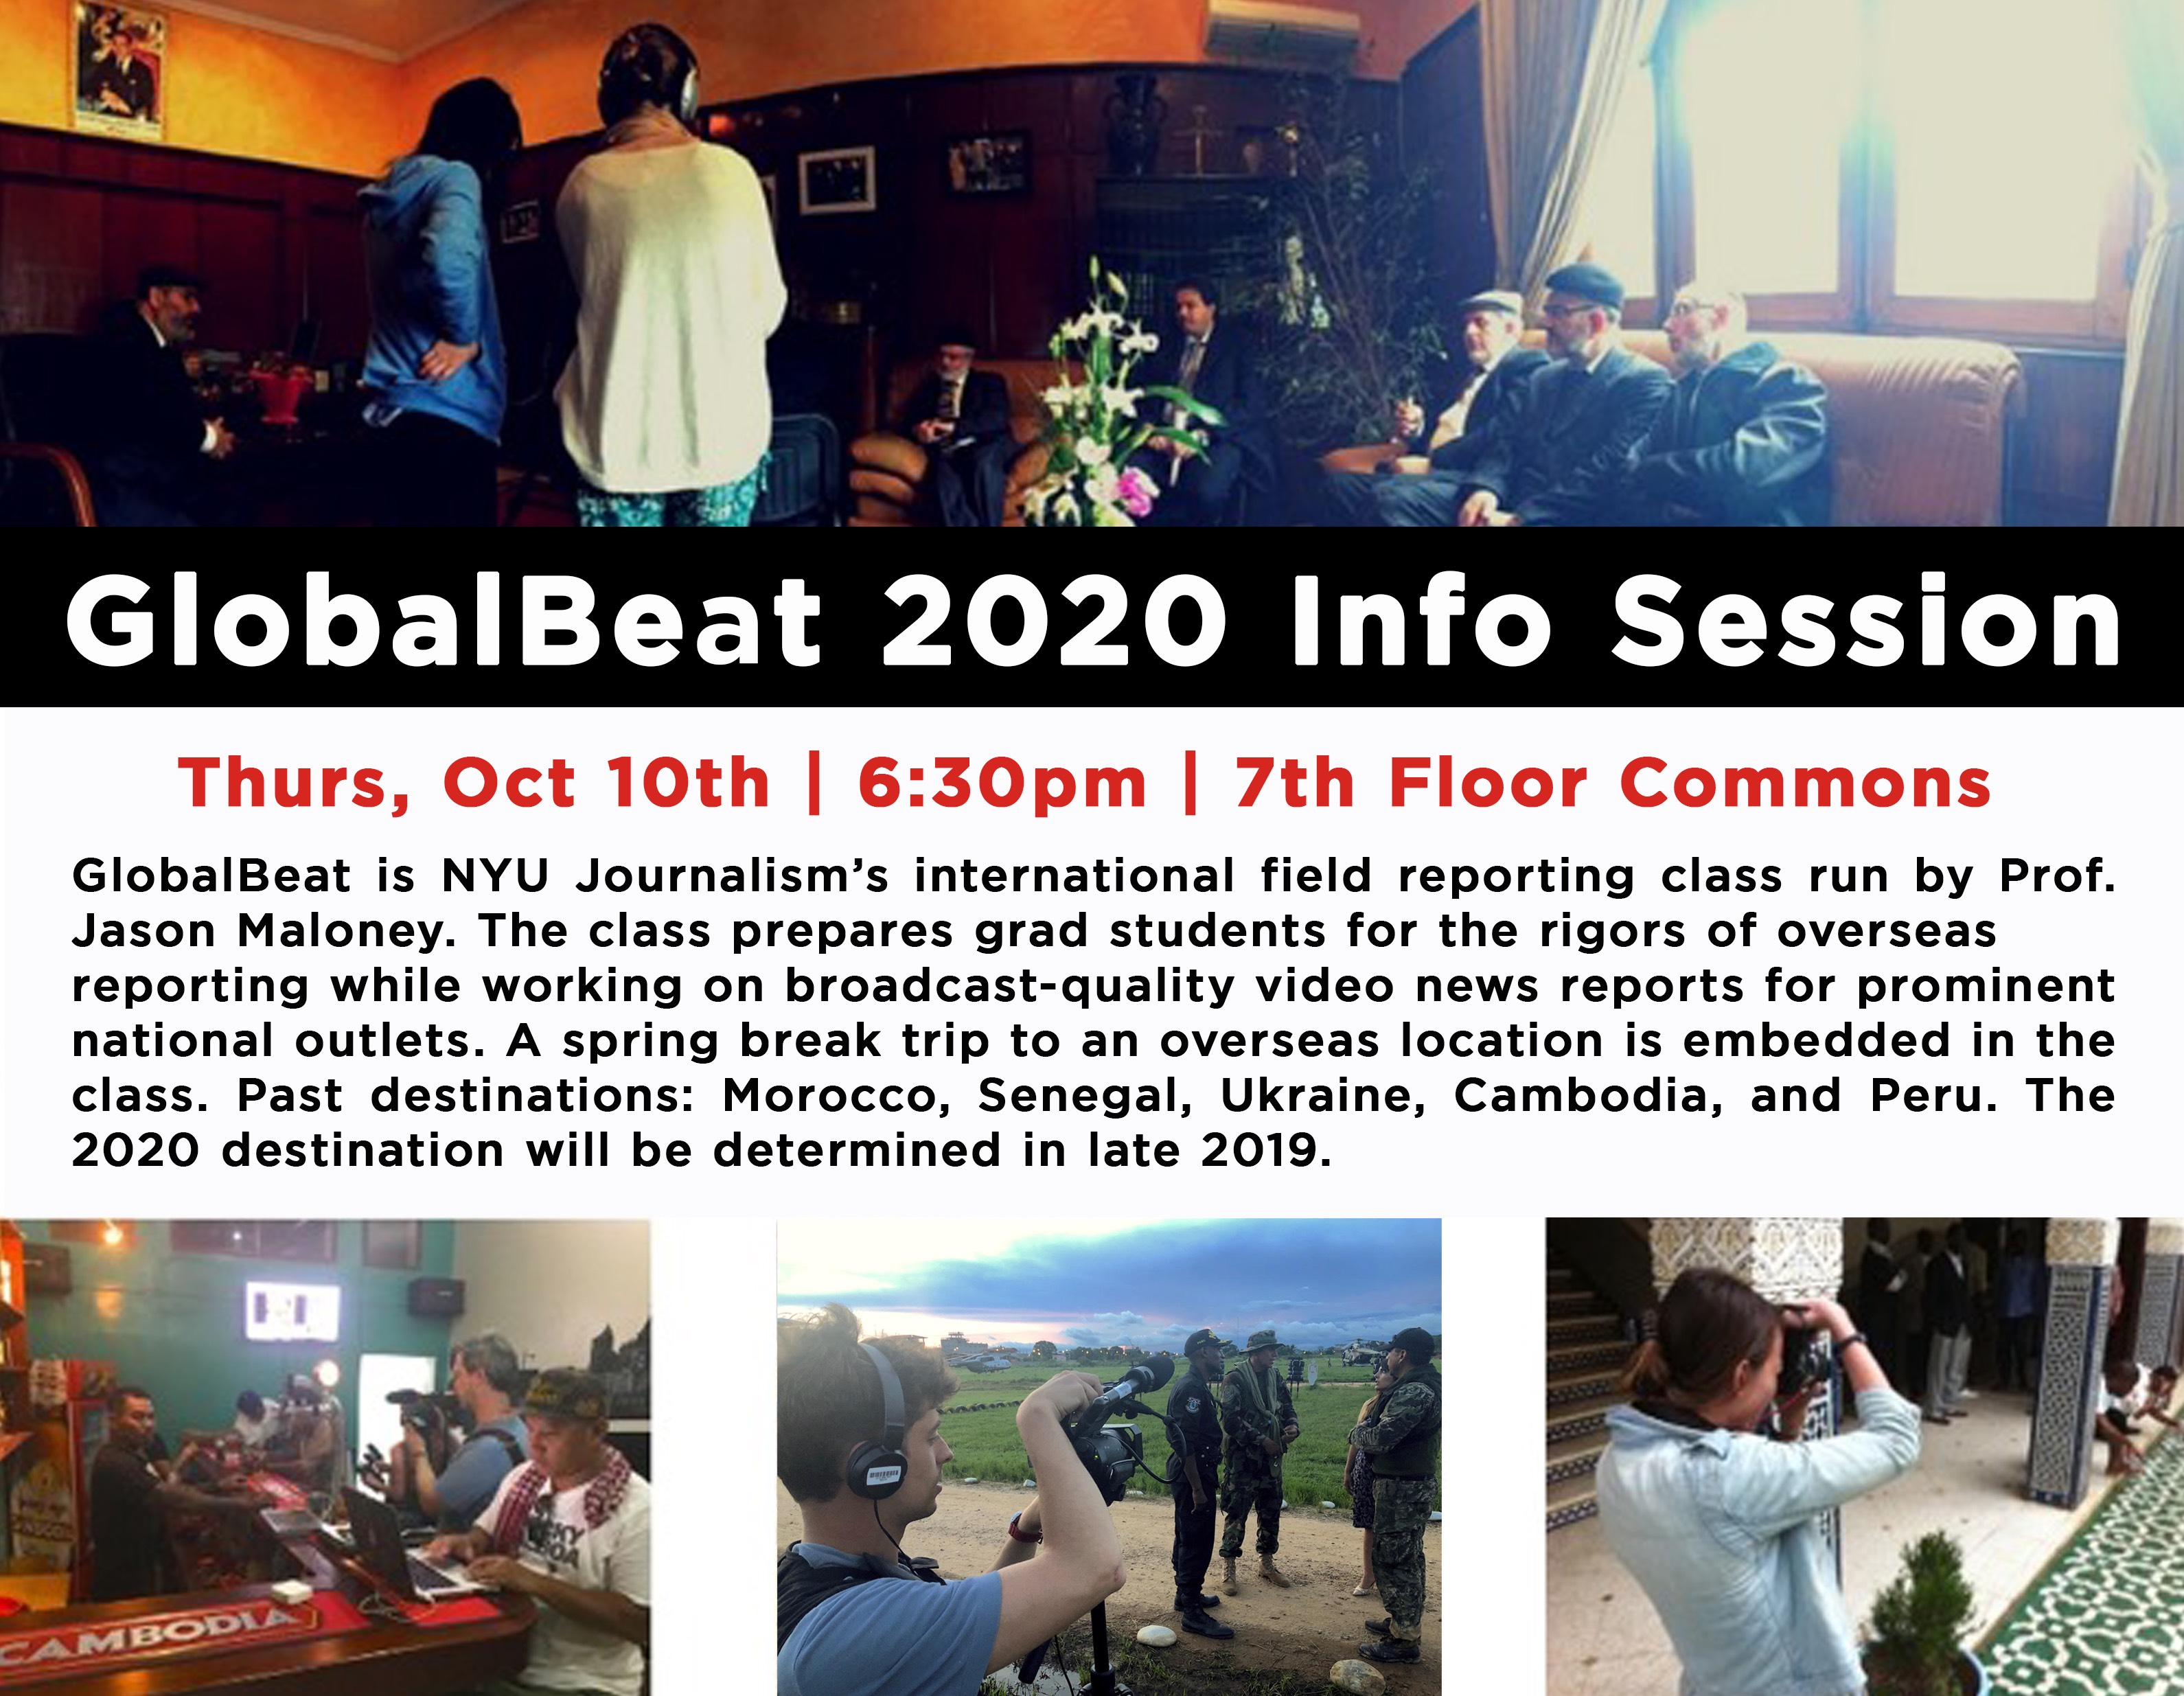 GlobalBeat 2020 Info Session